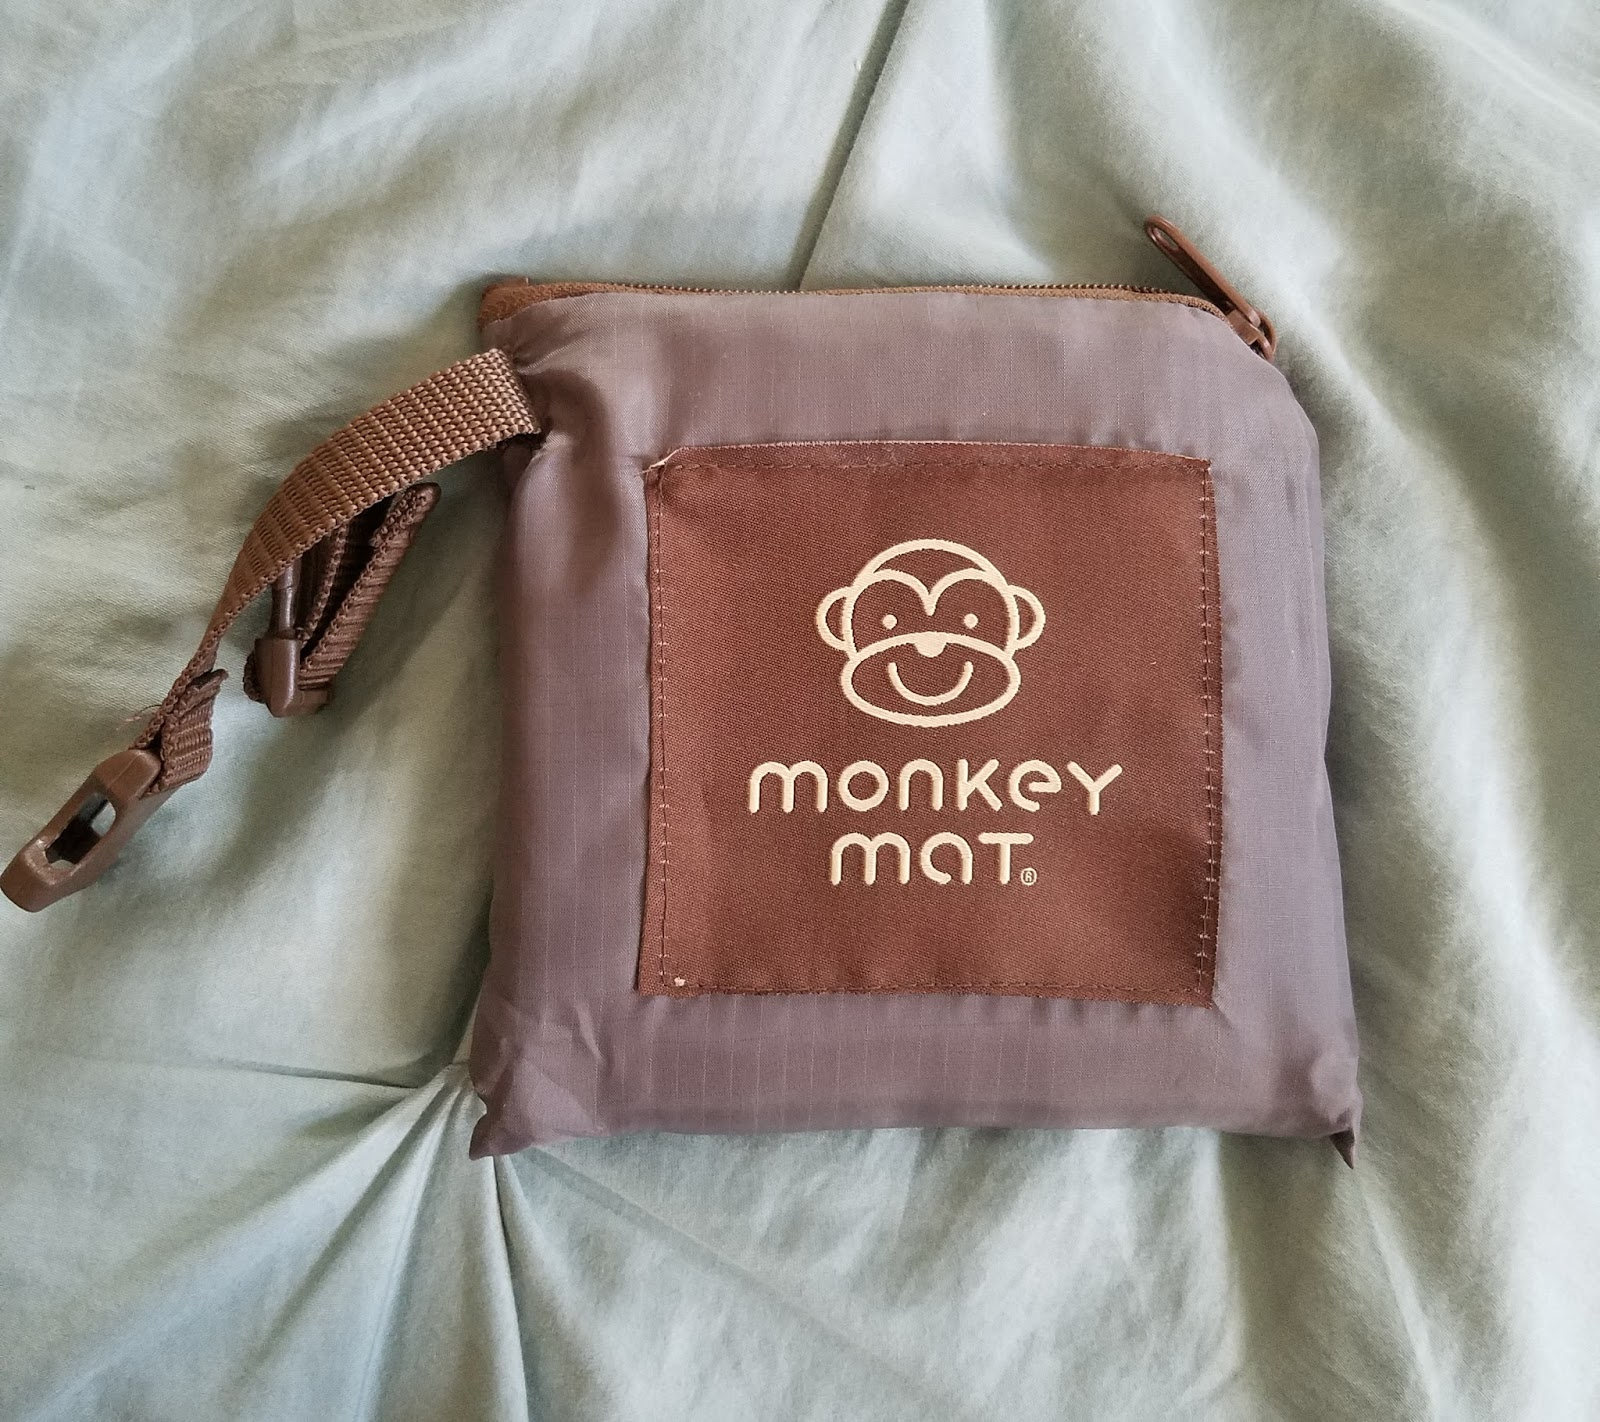 Floor mats on shark tank - You May Recognize The Name Monkey Mat From When It Was Featured On Shark Tank It Was Created To Be A Go Everywhere Mat That You Can Take Anywhere You Want